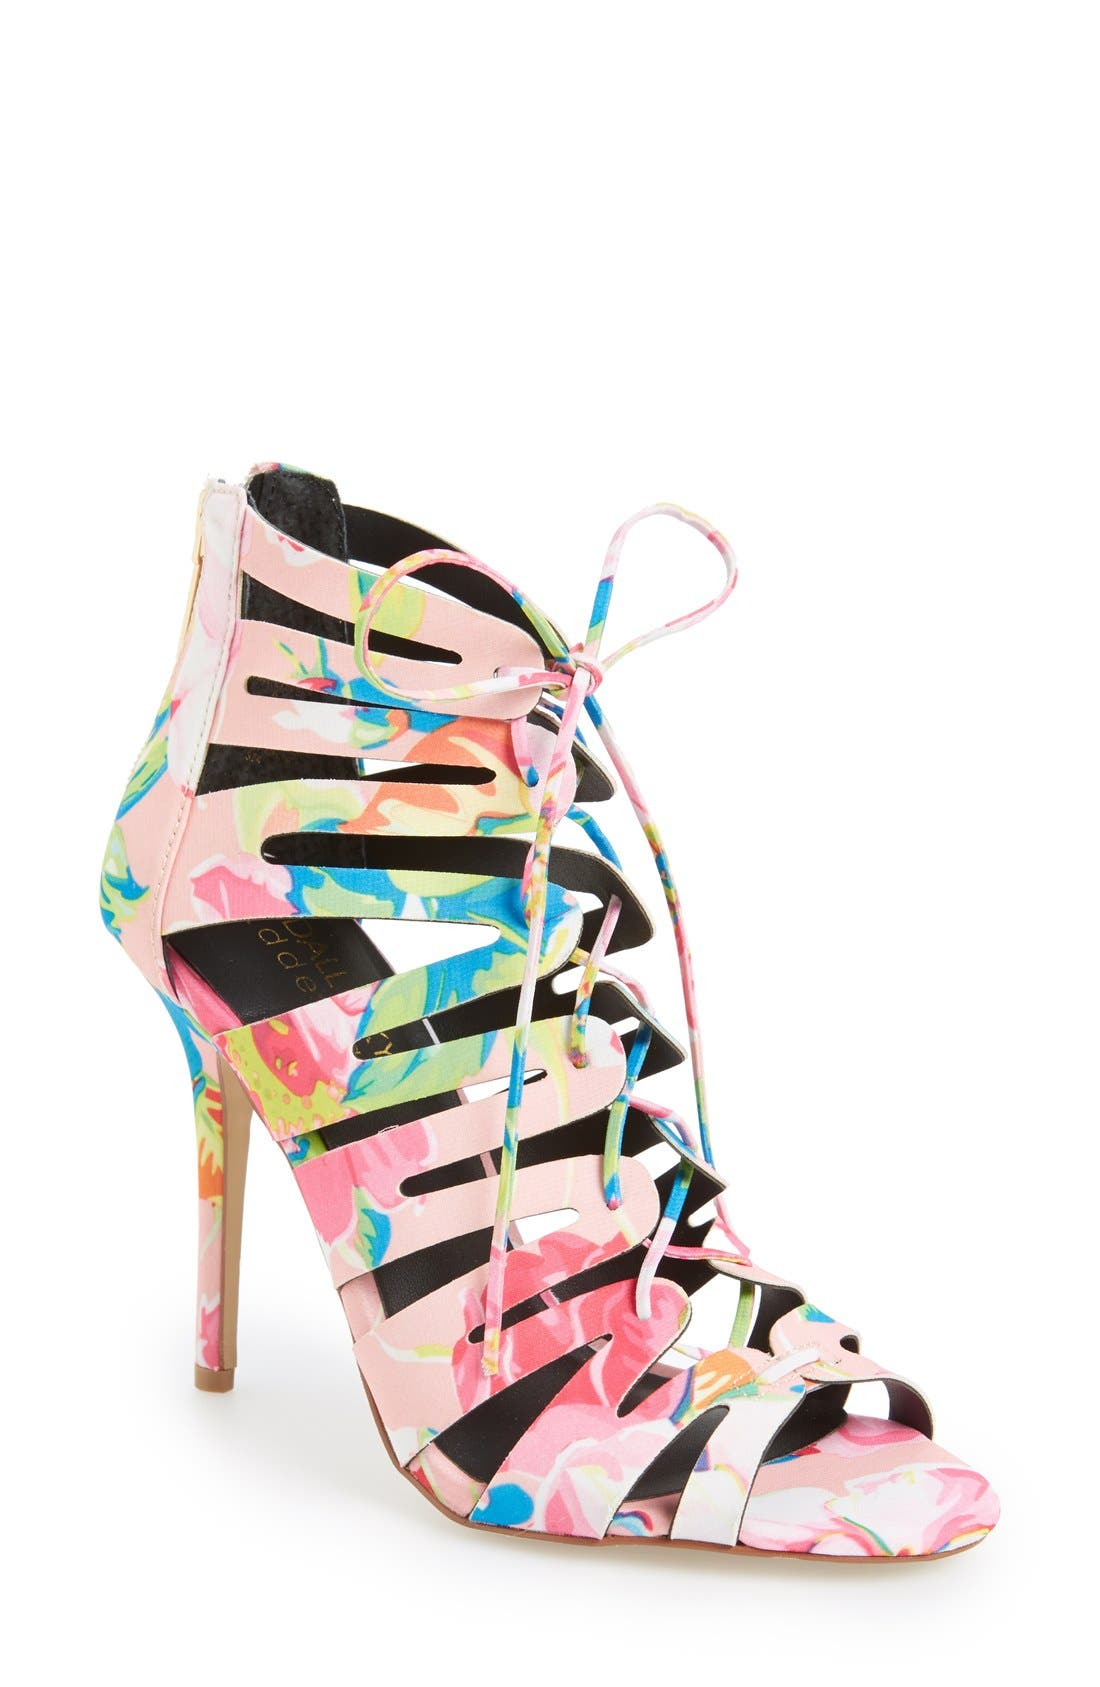 Alternate Image 1 Selected - KENDALL + KYLIE Madden Girl 'Daylittle' Ghillie Sandal (Women)